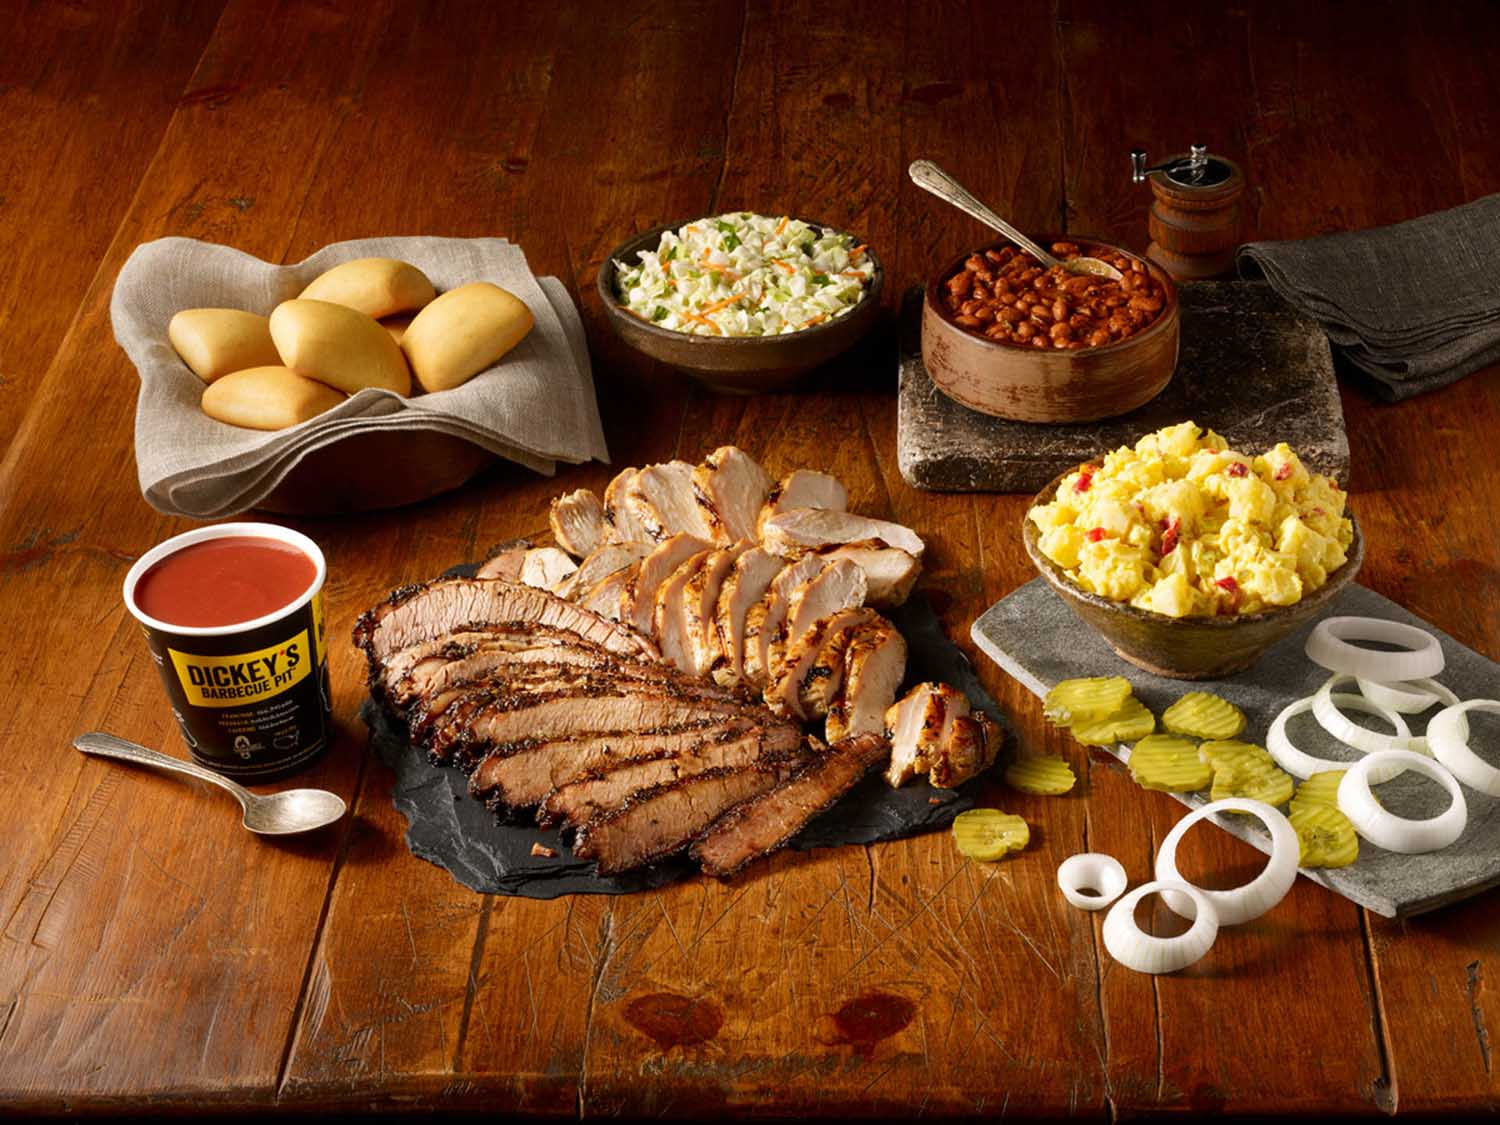 Dickey's Barbecue Pit Coming Soon to Kapolei, Hawaii